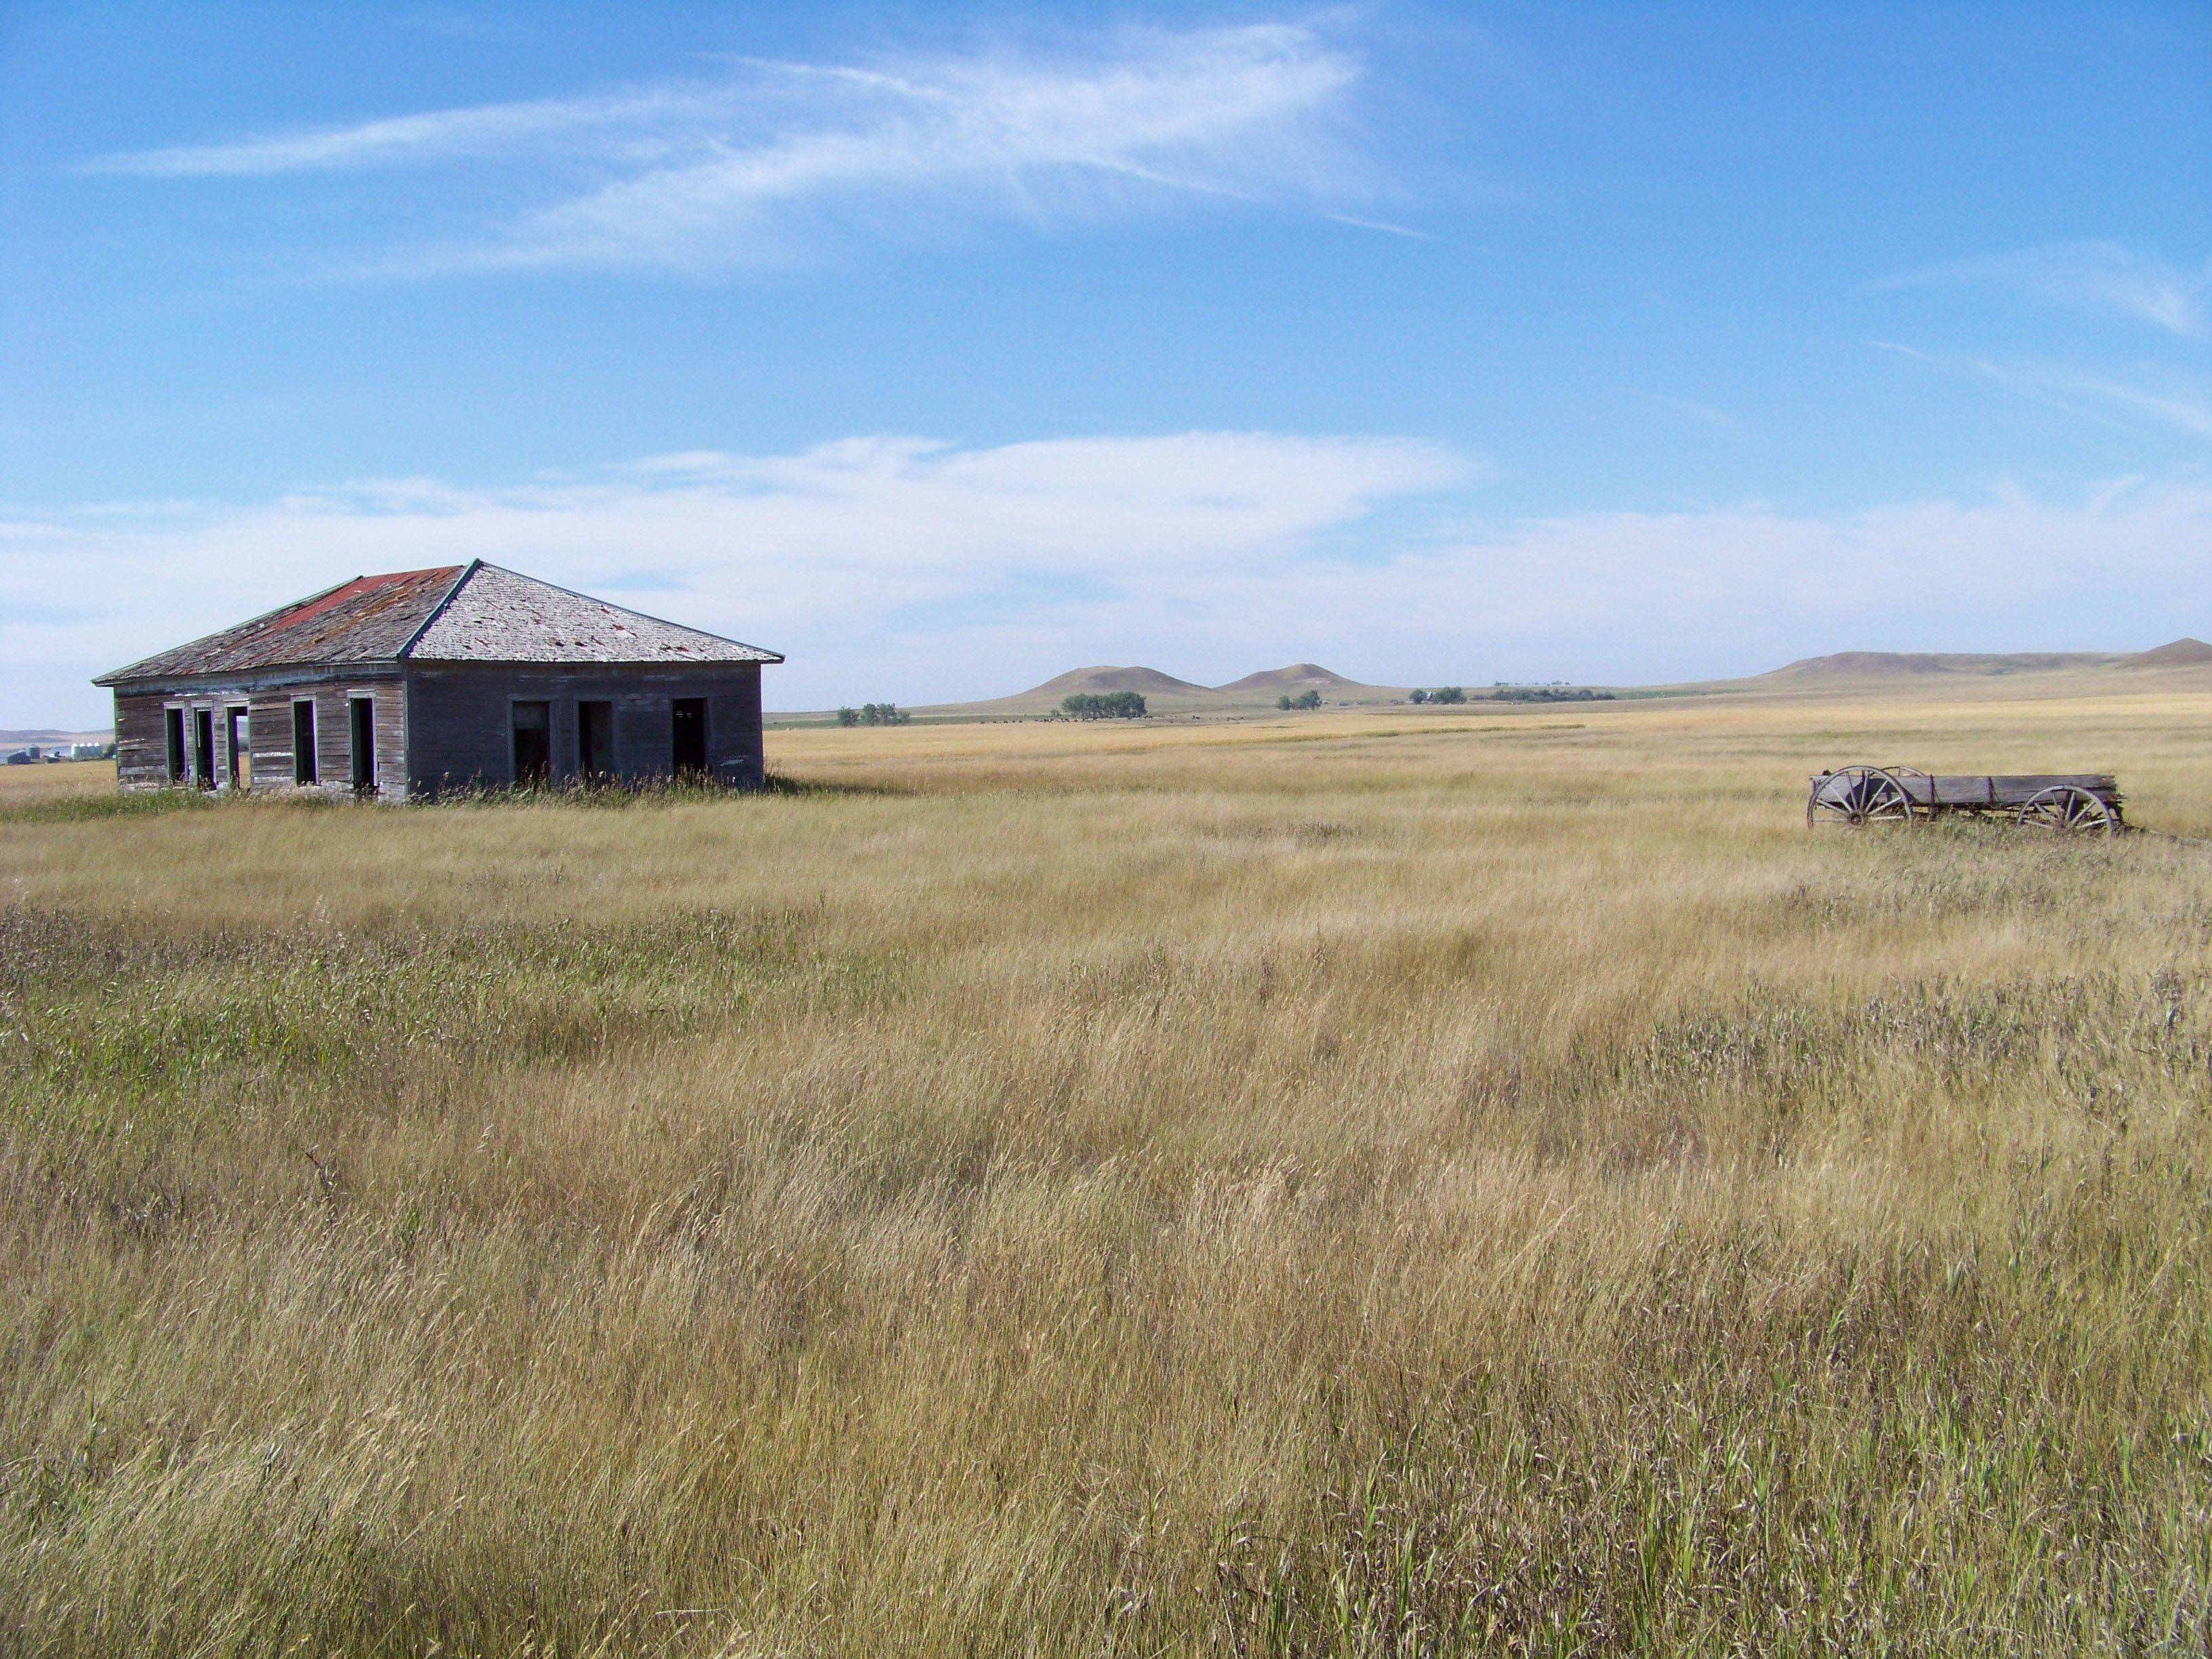 An old house sits in the middle of a prairie seen during a road trip to North Dakota in 2009.